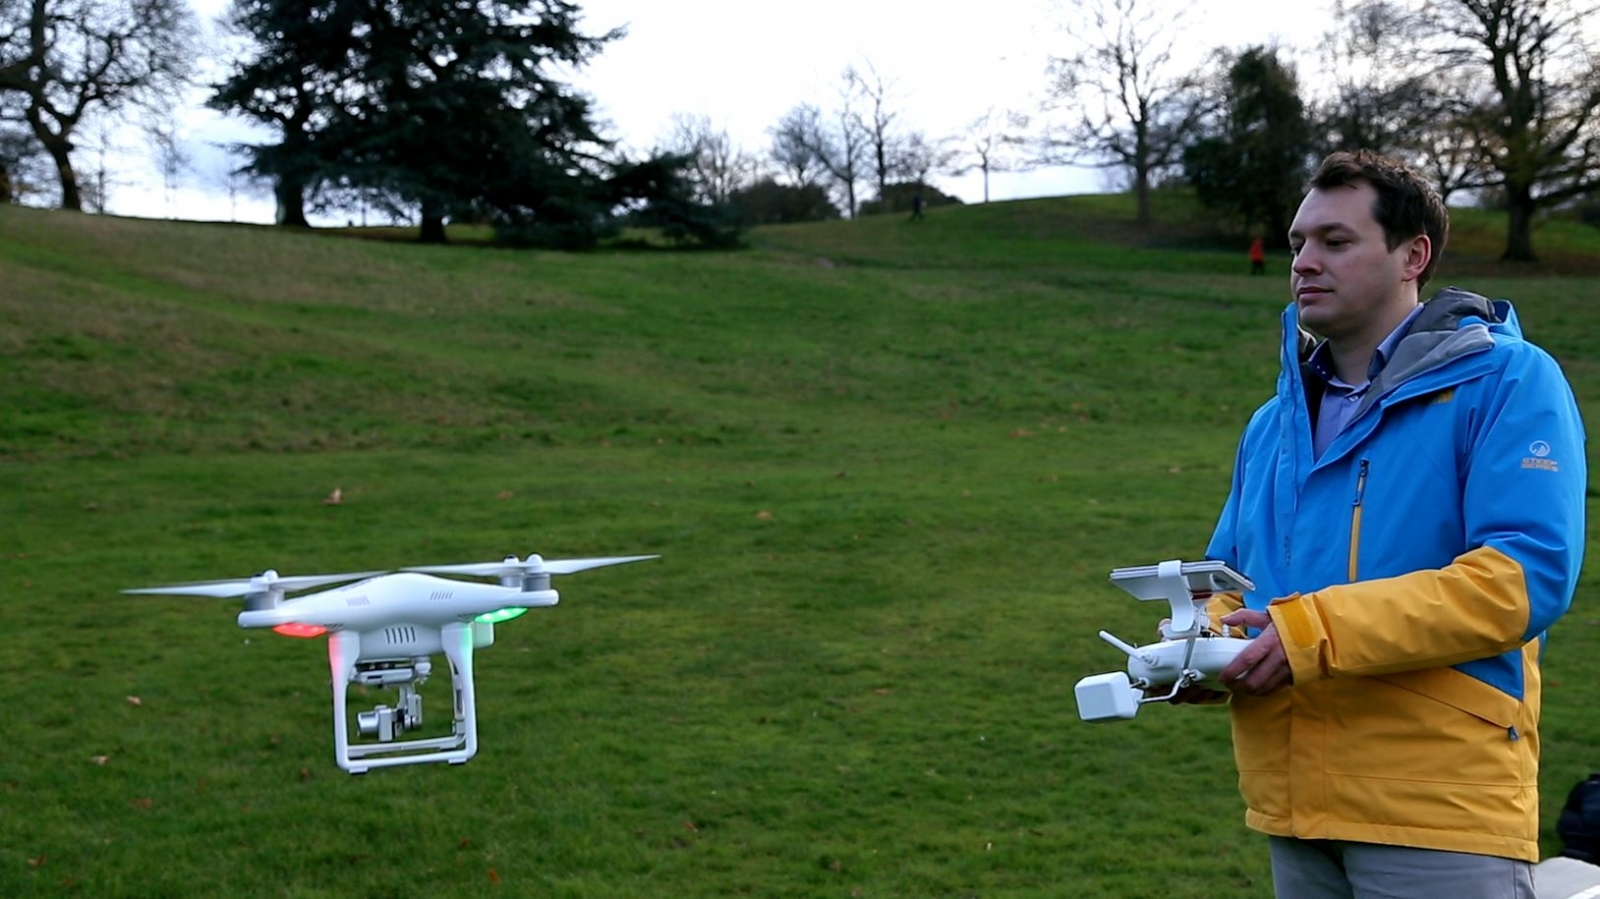 Flying a drone in the UK: What you need to know